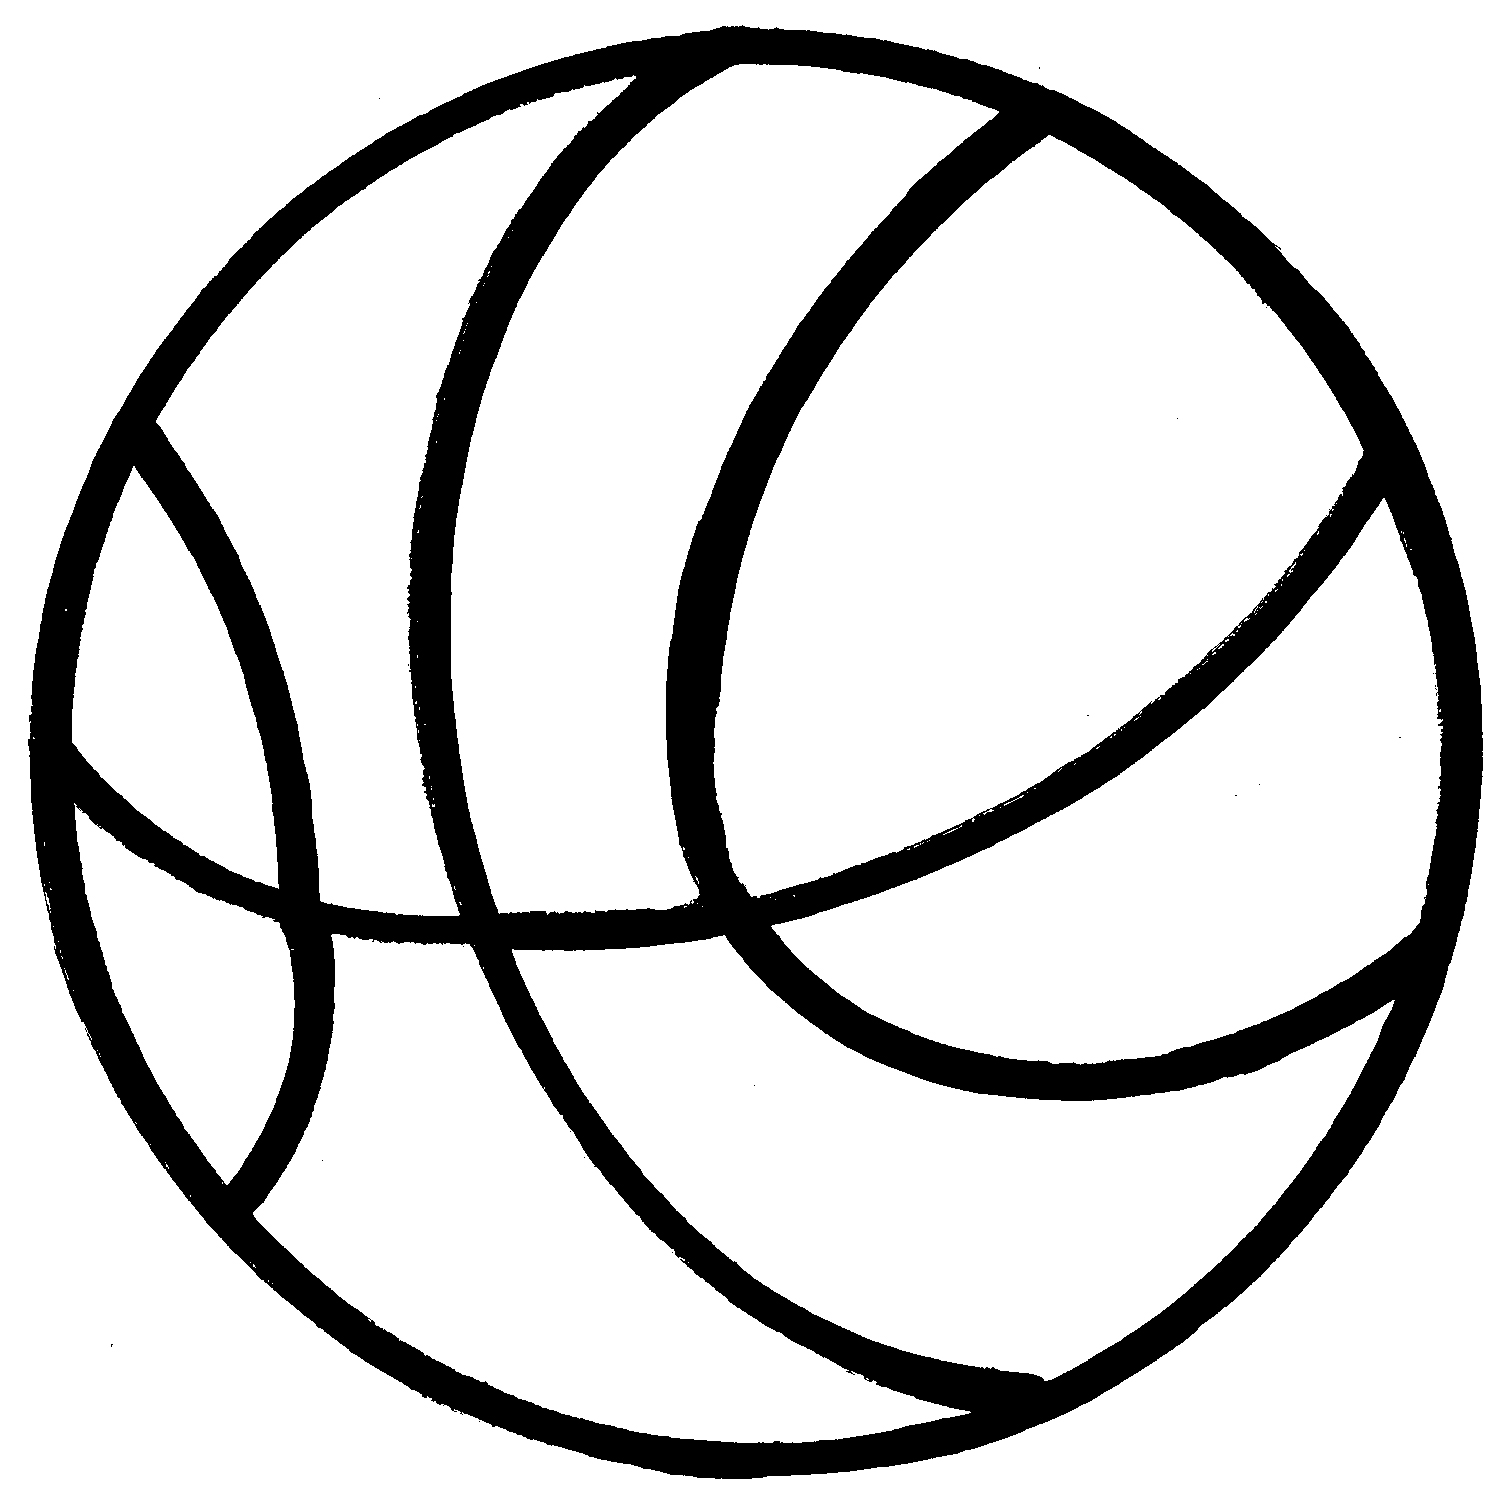 Basketball Clip Art Free Basketball Clip-Basketball clip art free basketball clipart to use for party image 6-7